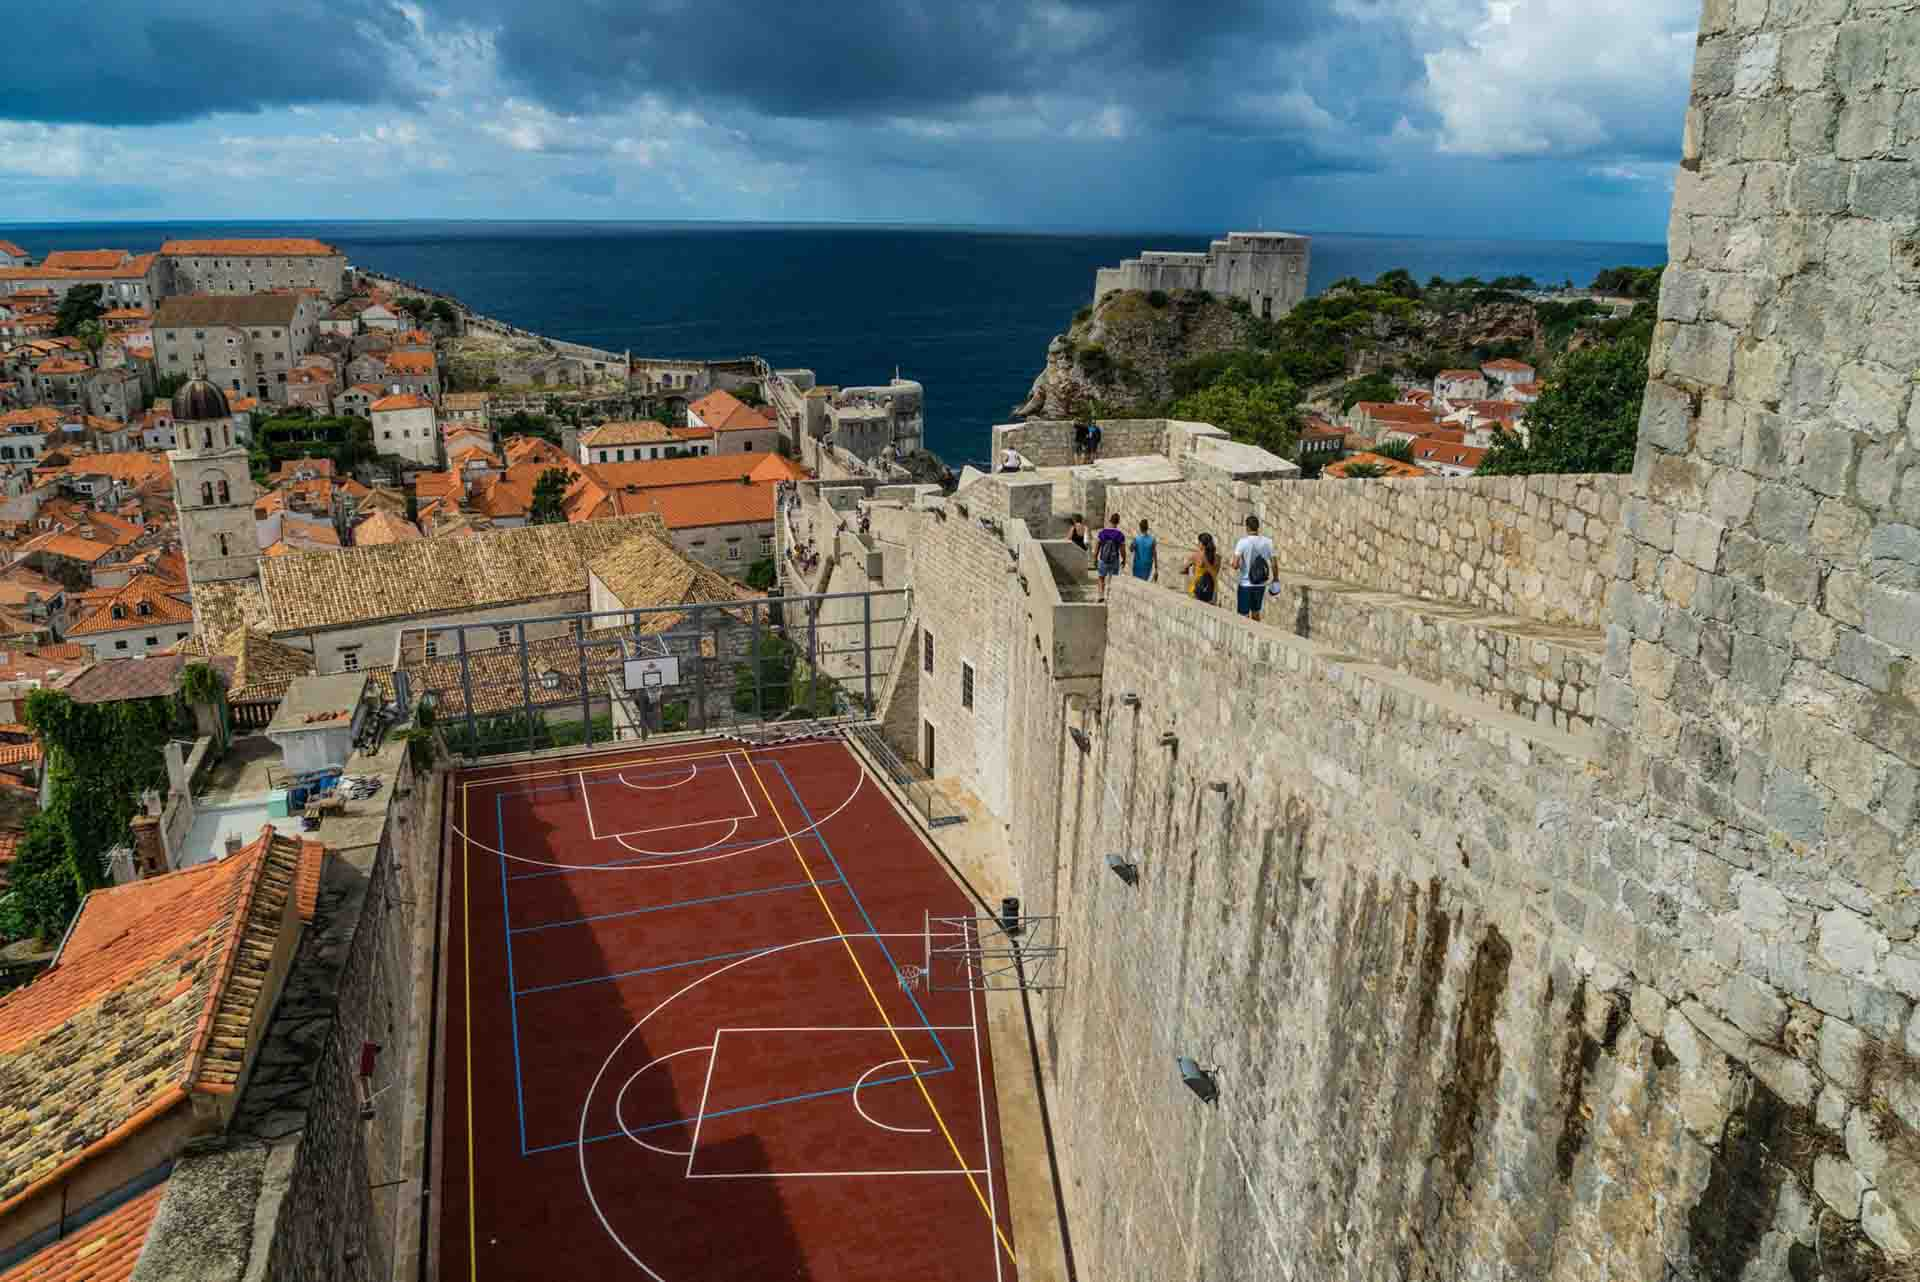 Croatia Dubrovnik City Walls tour 3, dubrovnik, croatia, pescart, photo blog, travel blog, blog, photo travel blog, enrico pescantini, pescantini